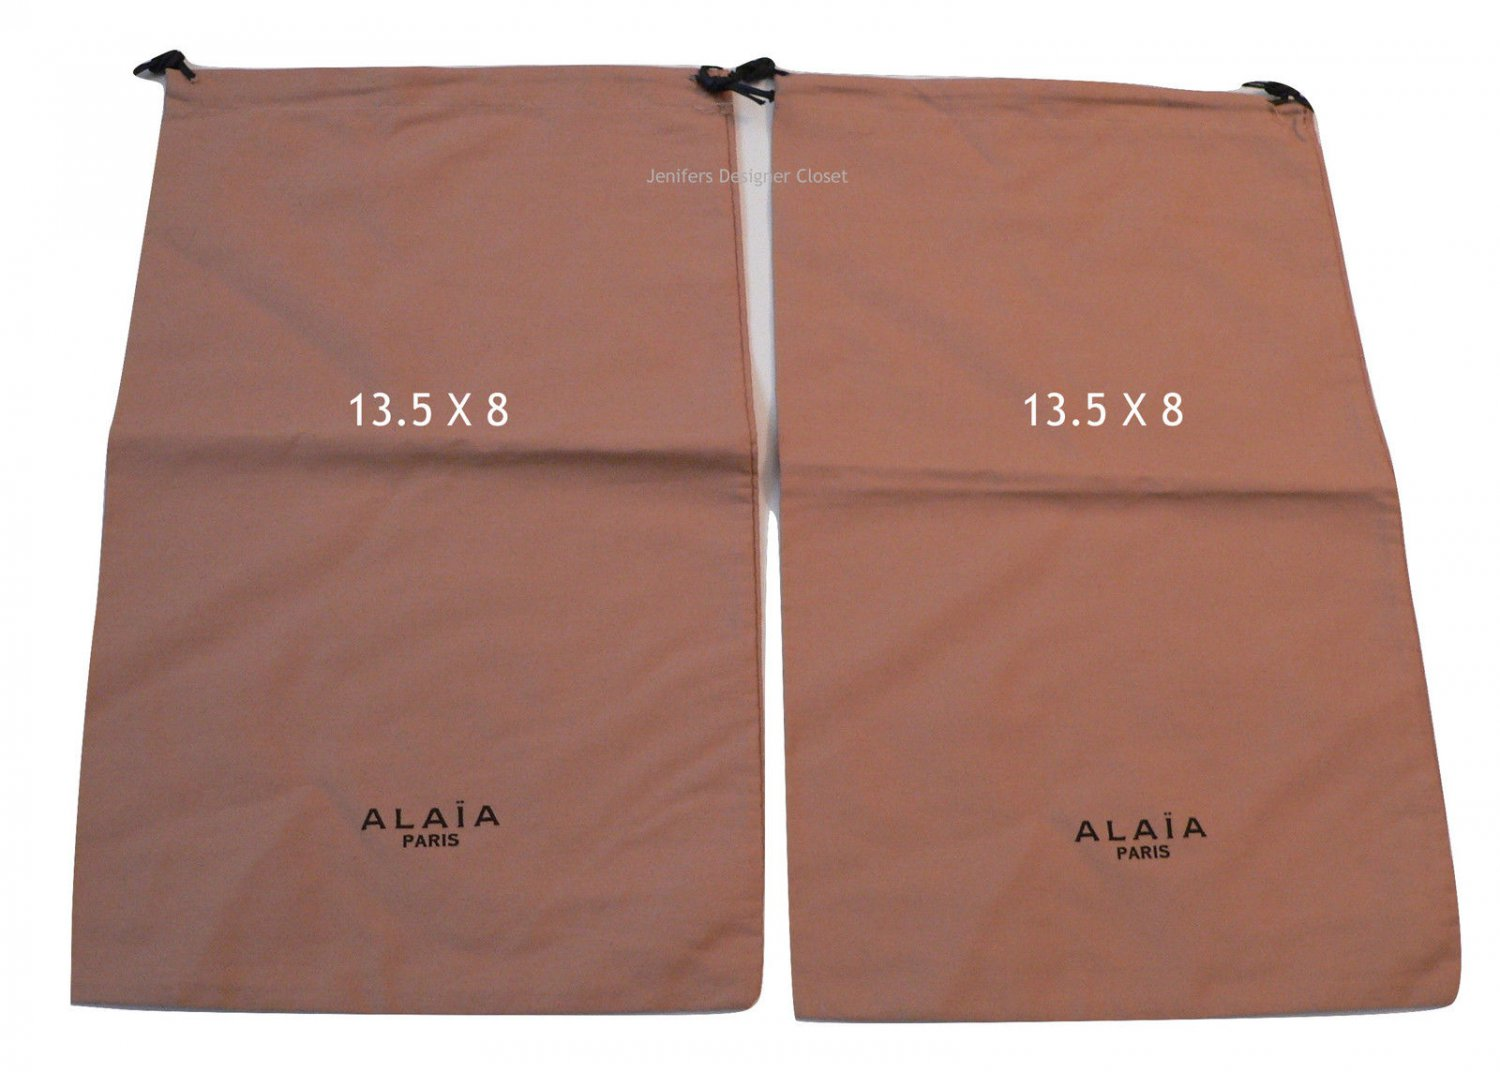 New Azzedine ALAIA dust bags 13.5 X 8 sleepers shoes storage travel purse duster